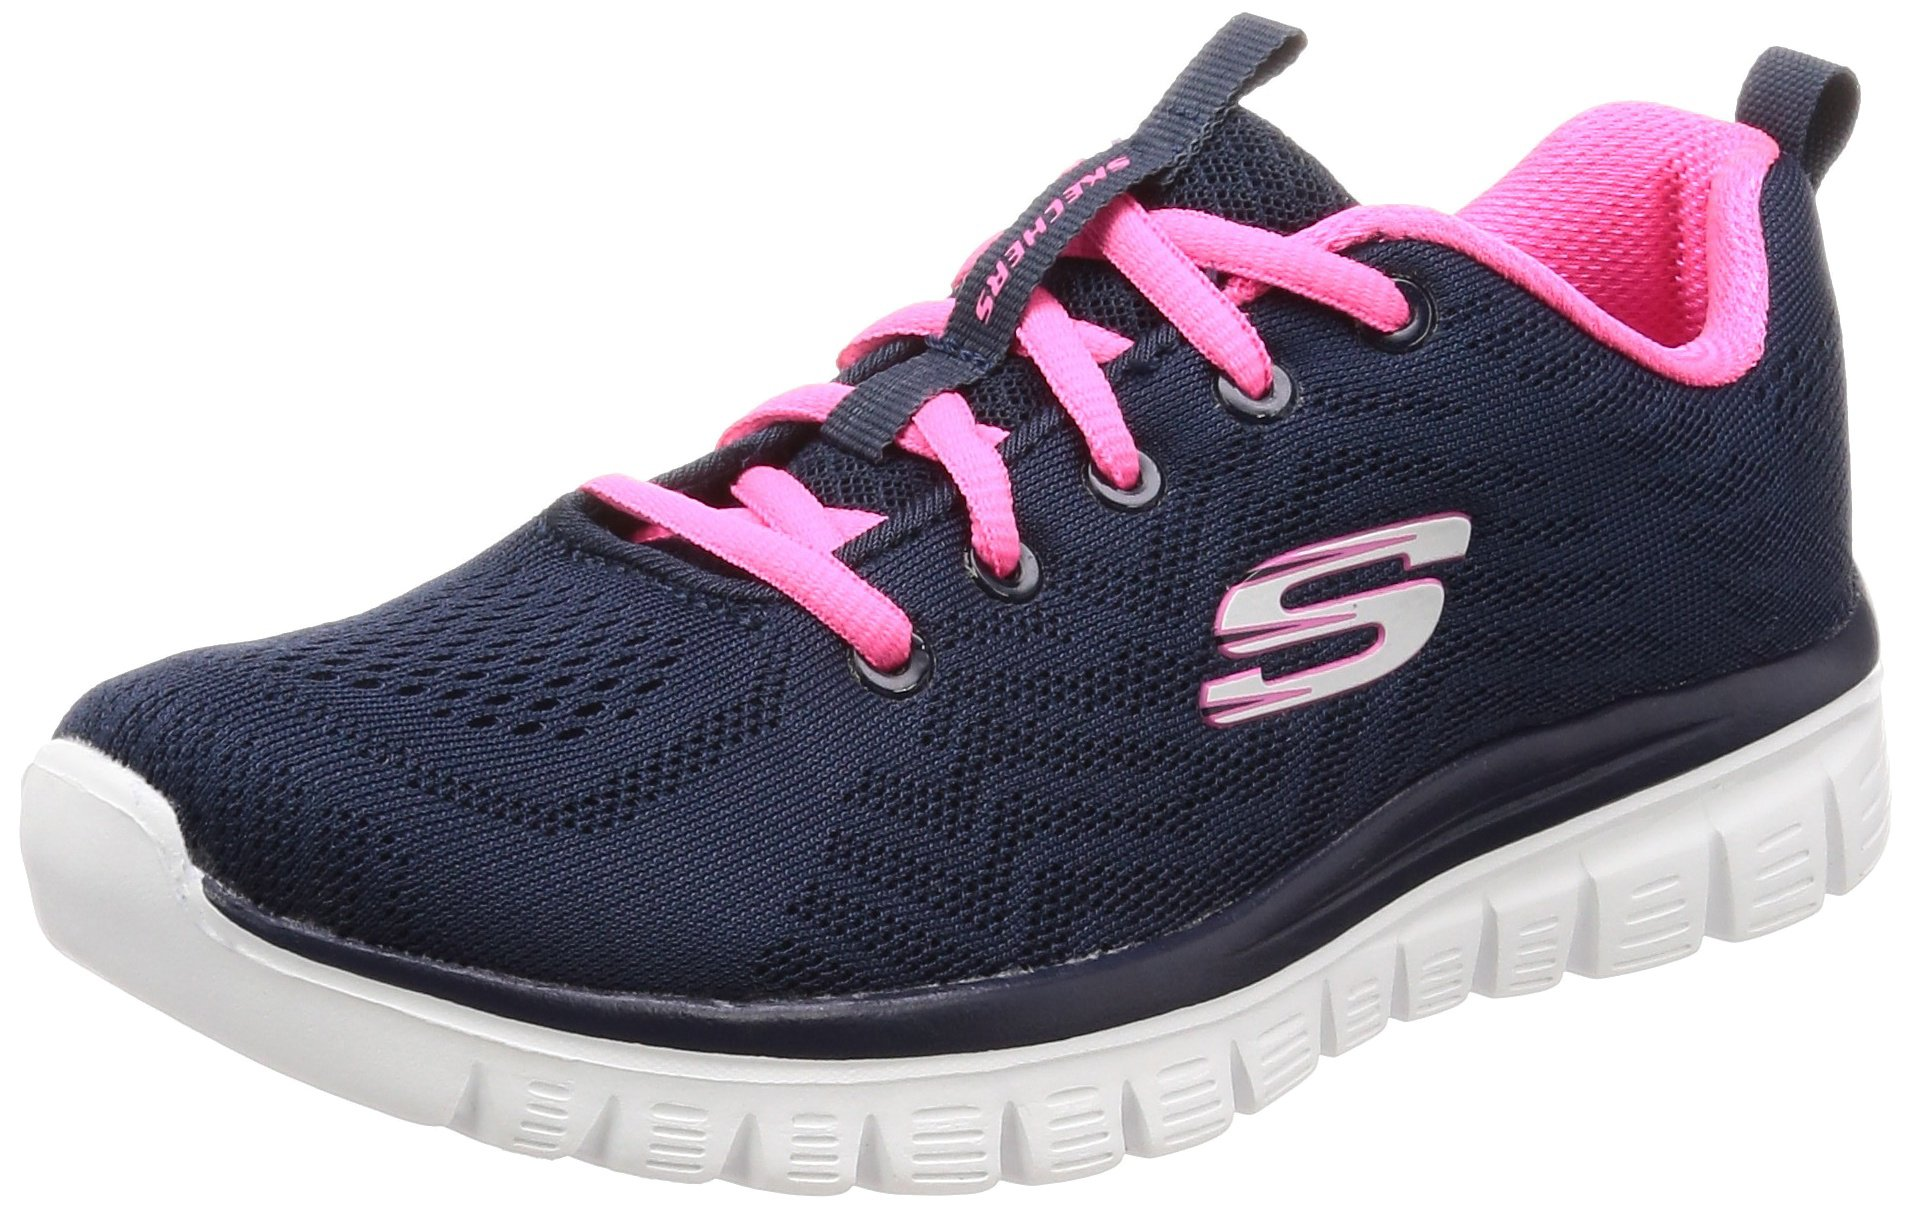 Skechers Graceful-Get Connected, Zapatillas para Mujer product image